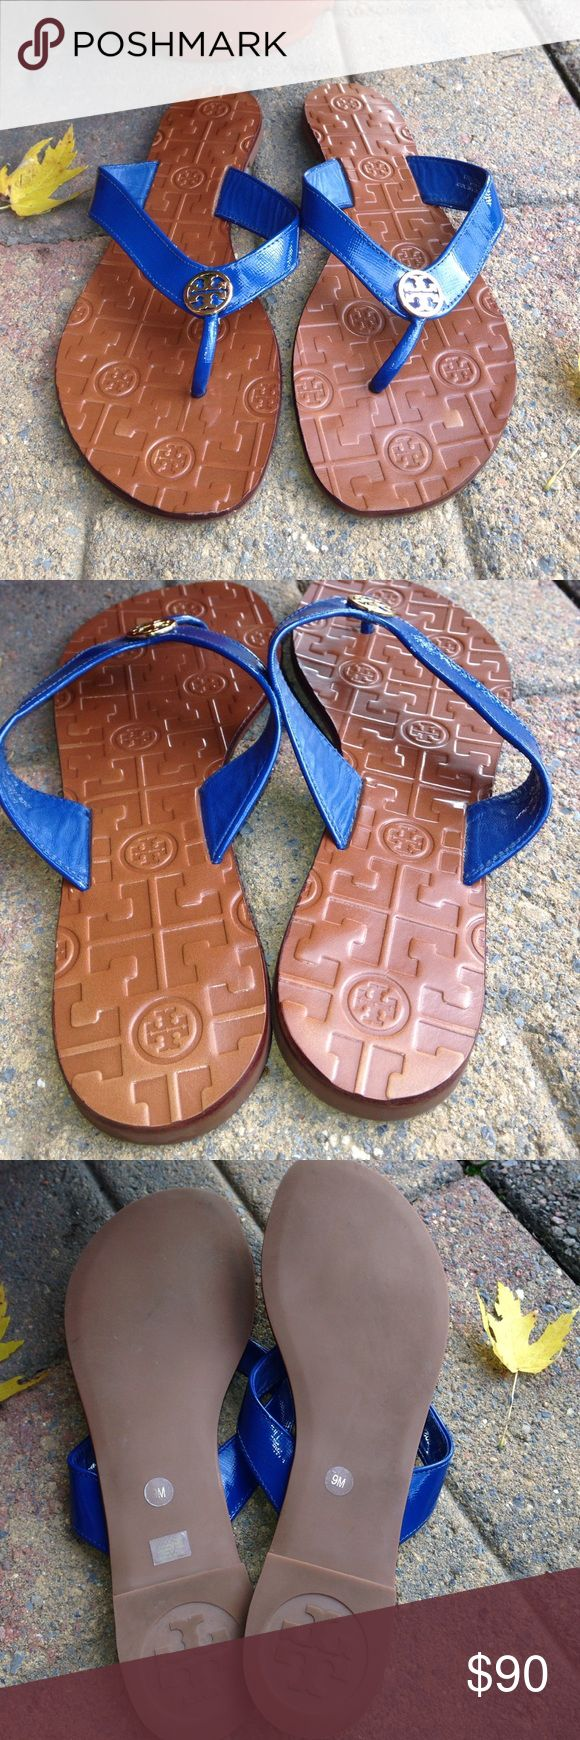 Tory  Burch Sandals Pre  owned used once tags as you can see still on them. Were too tight!!!  These are Tori Thora  sandal flip flop Blue. Beautiful gold T logo!!  Size 9 M. Leather upper and lining. Man made sole. Made in Dominican Republic.  Beautiful condition but they were worn once!!! Tory Burch Shoes Sandals